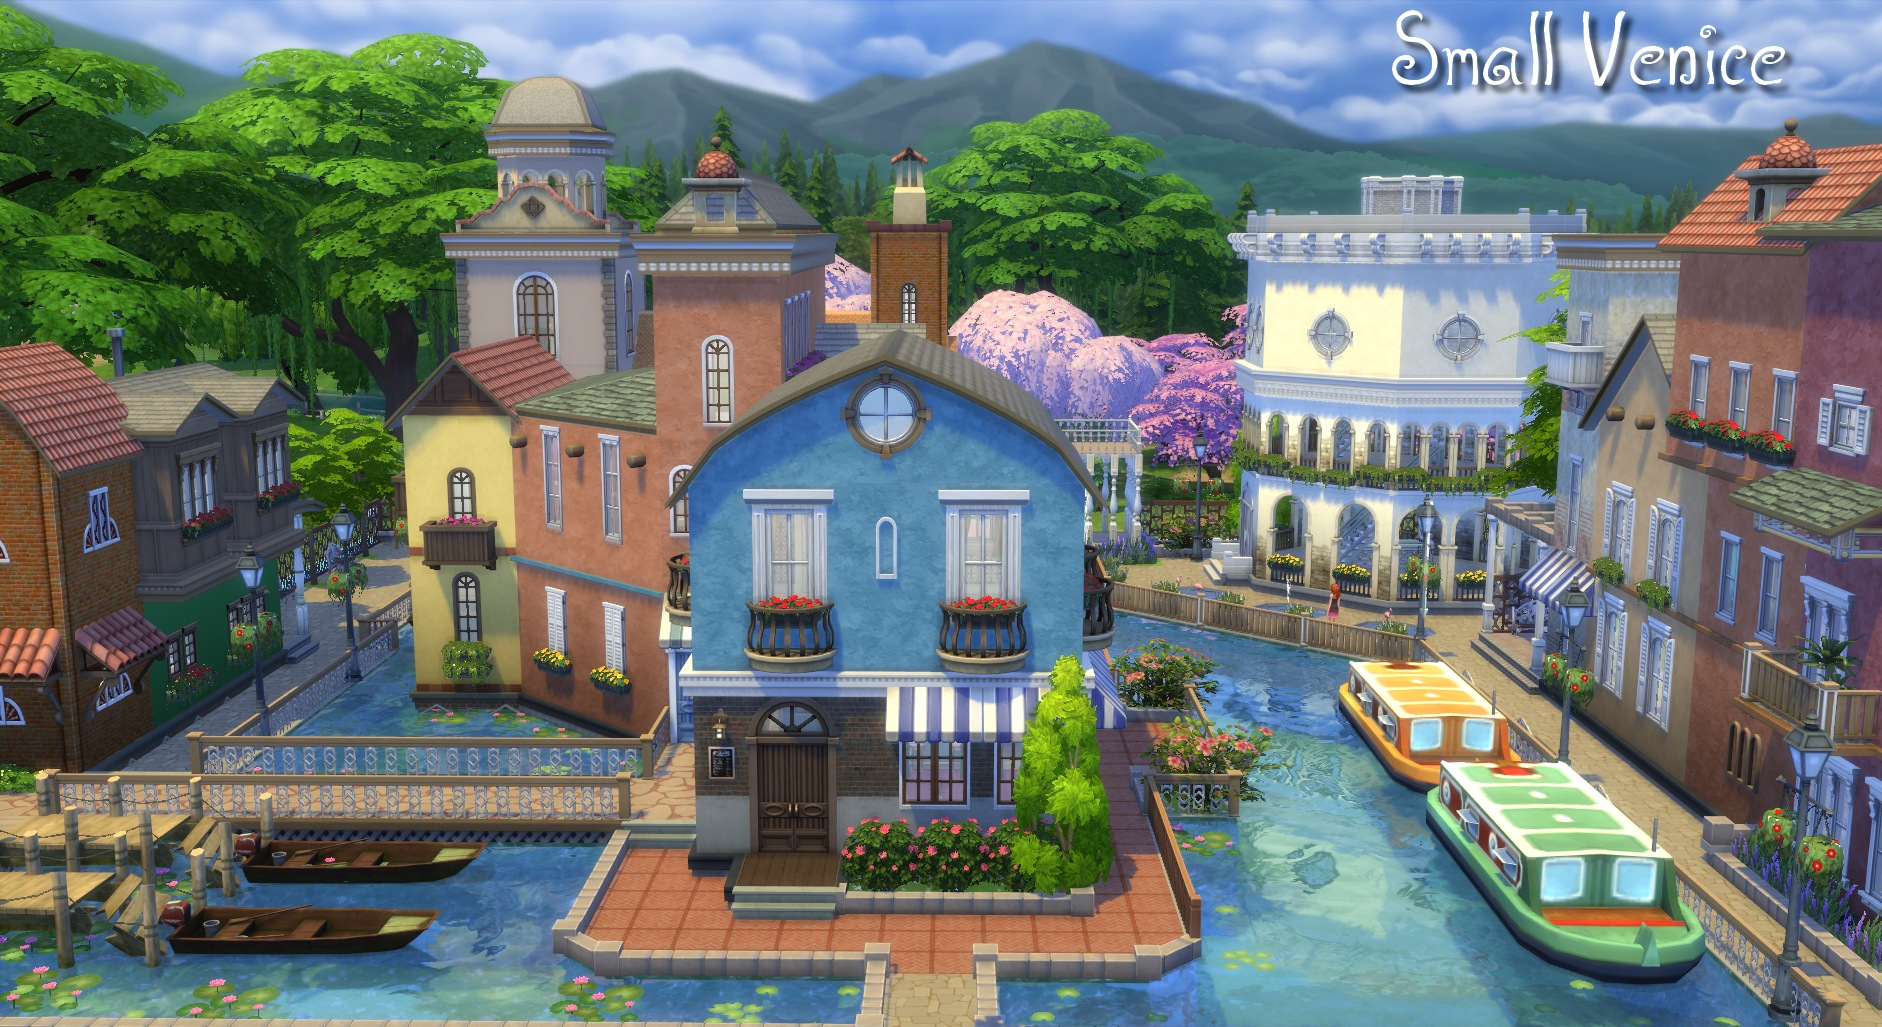 mod the sims small venice